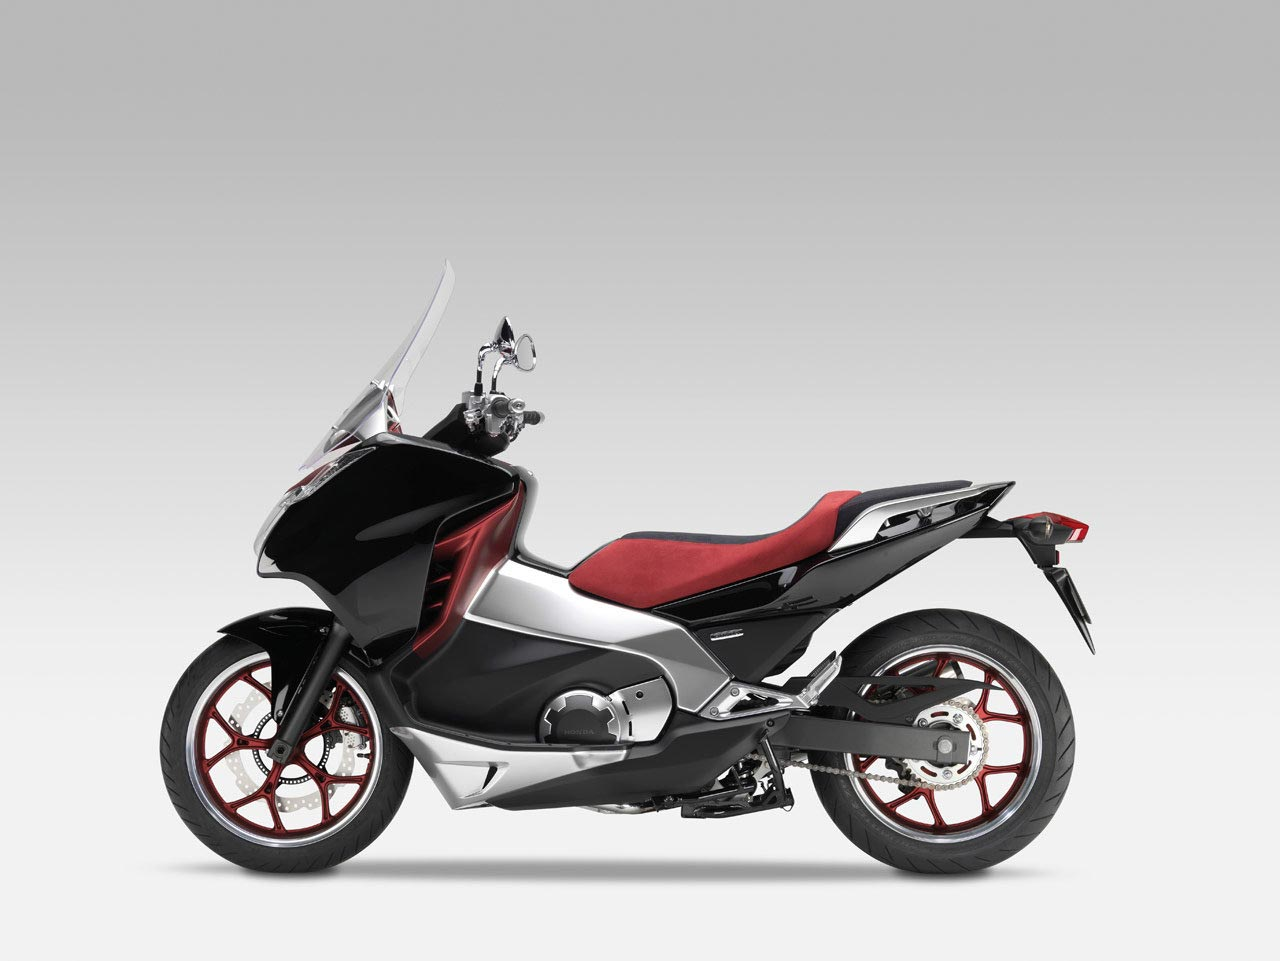 Honda Working On A Scooter/Motorcycle Hybrid For The US